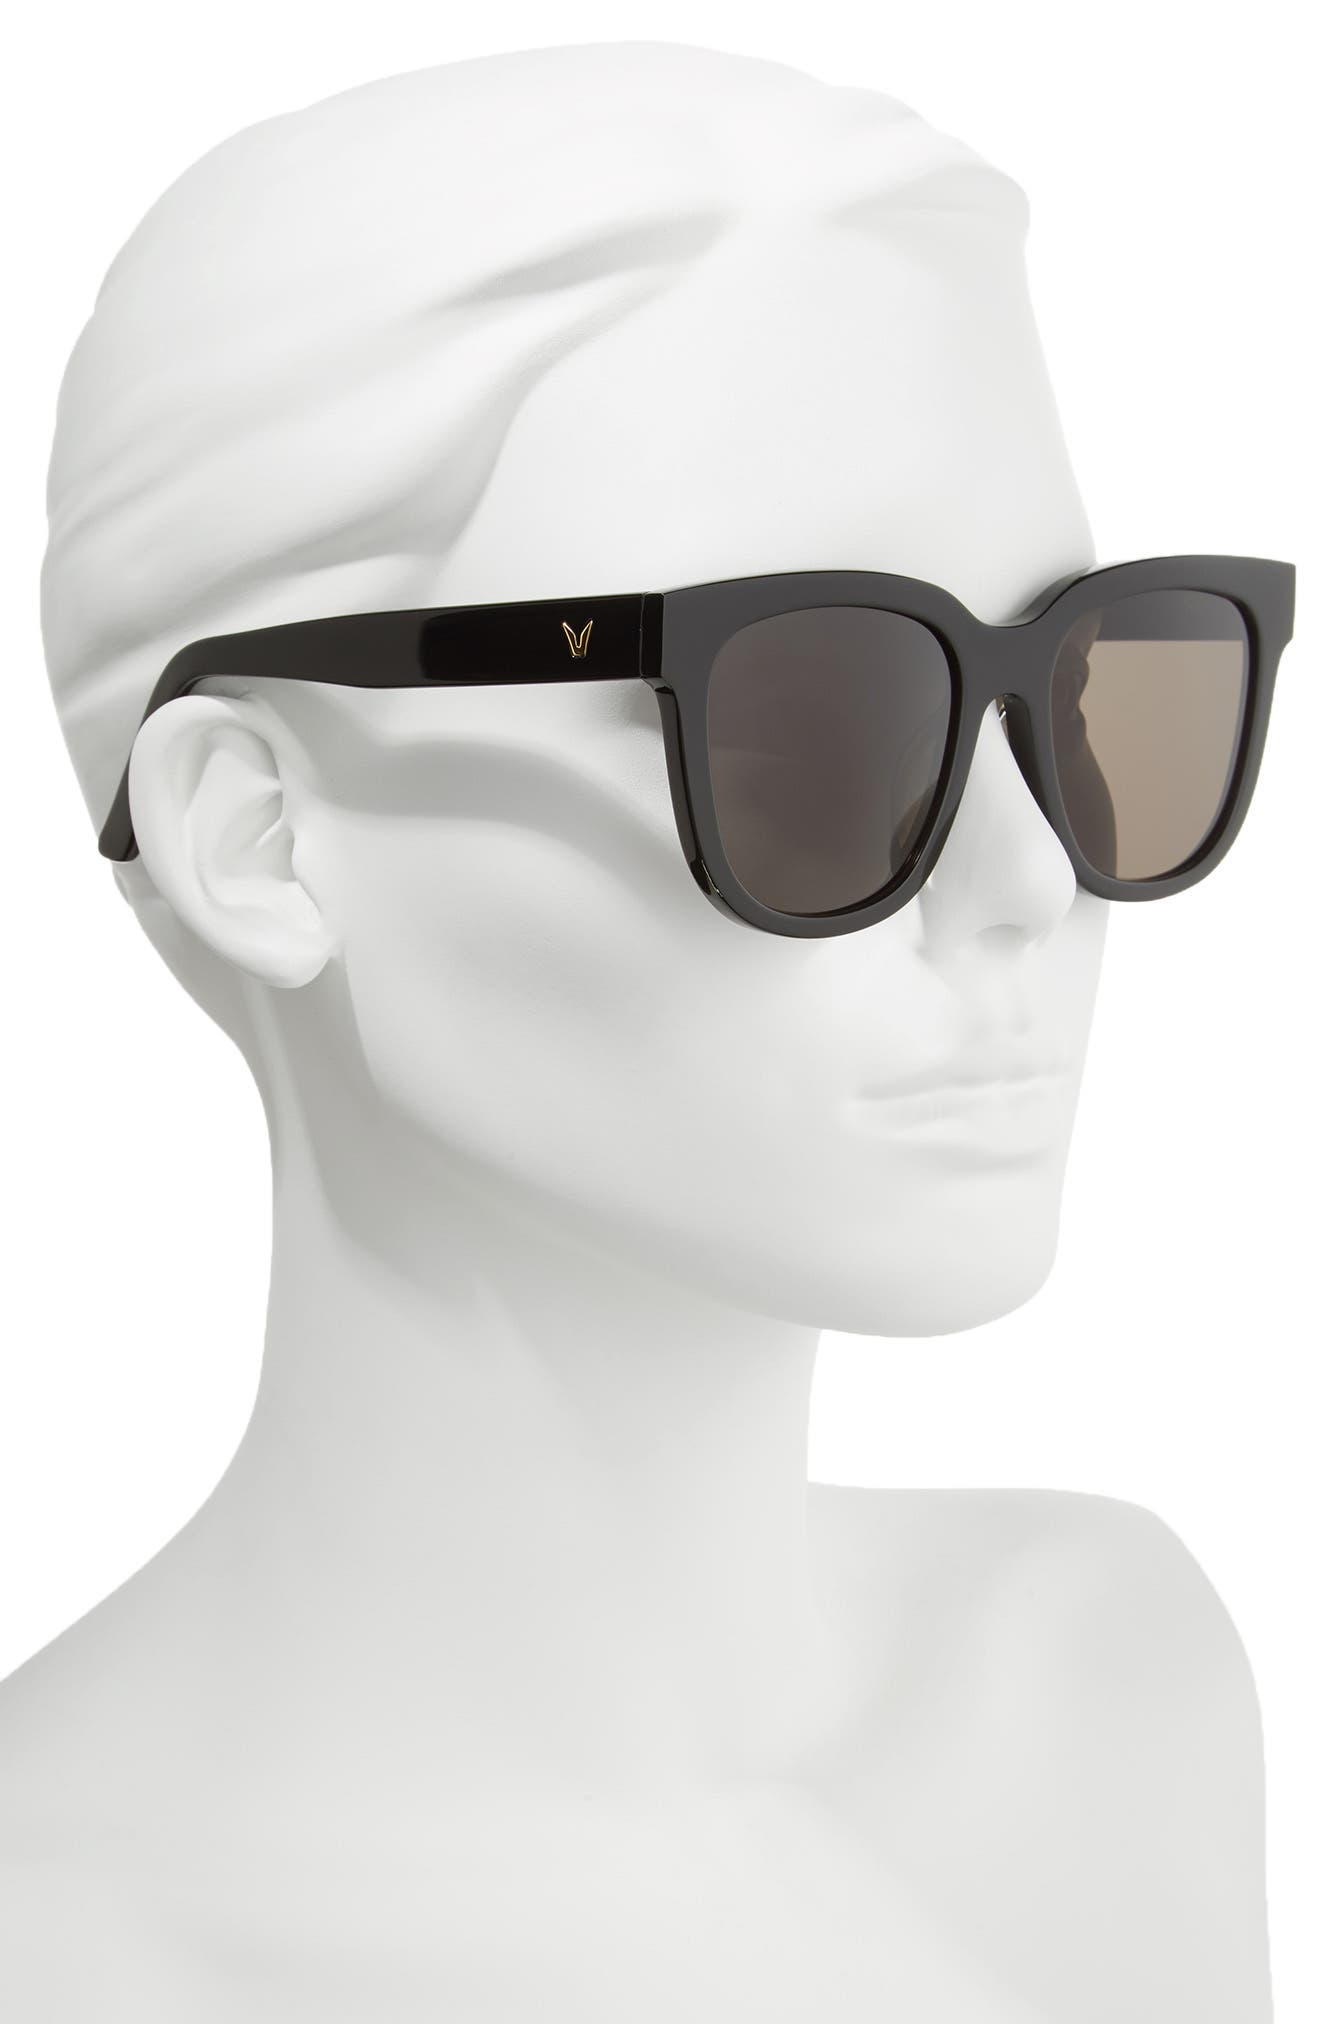 Salt 55mm Sunglasses,                             Alternate thumbnail 2, color,                             001